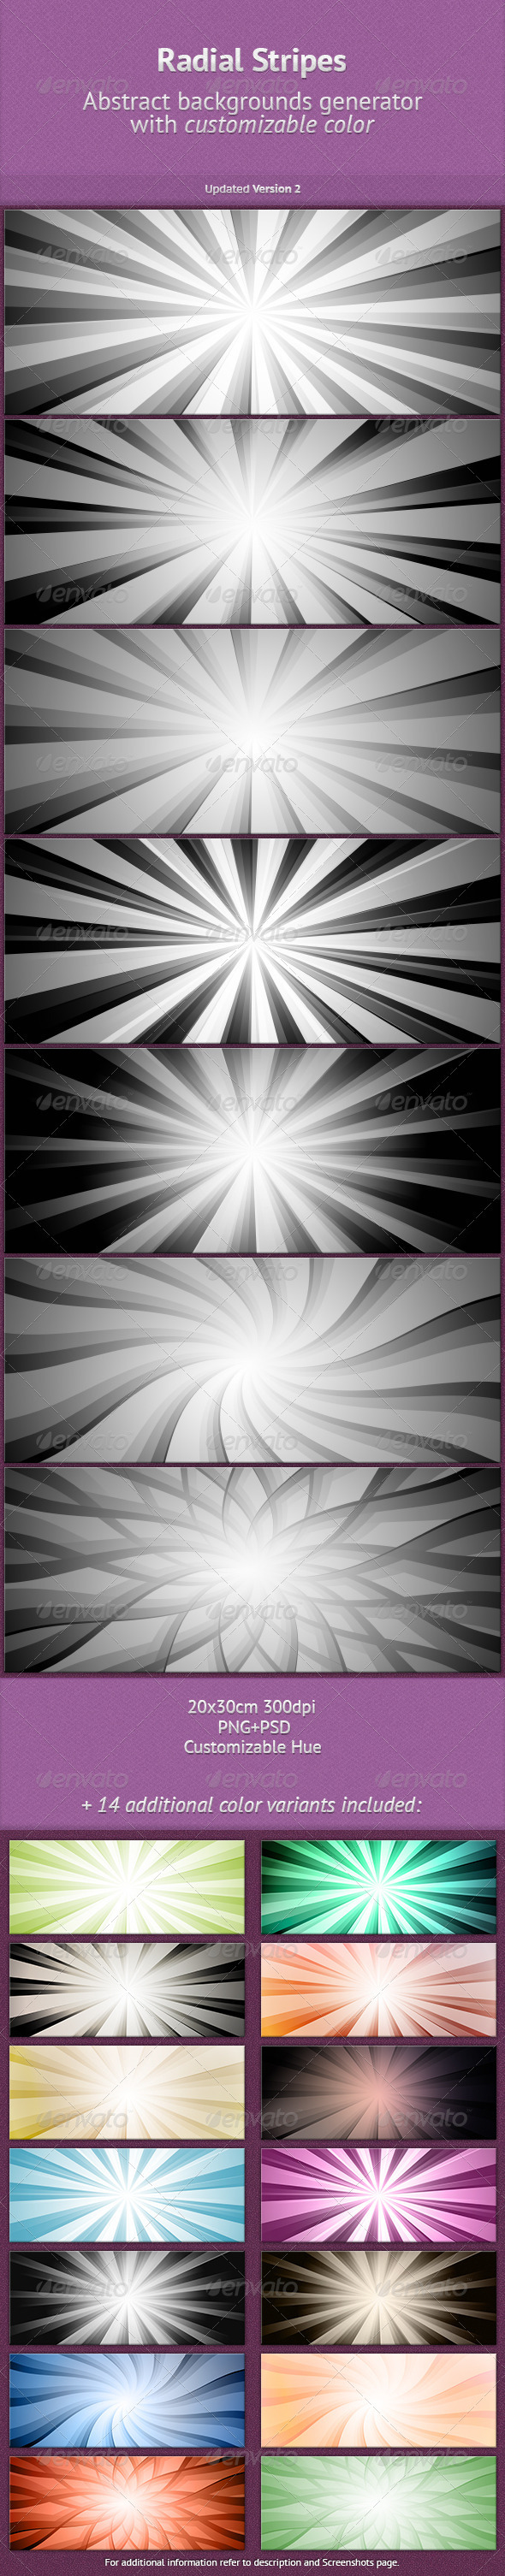 Radial Stripes BGs Generator - Abstract Backgrounds